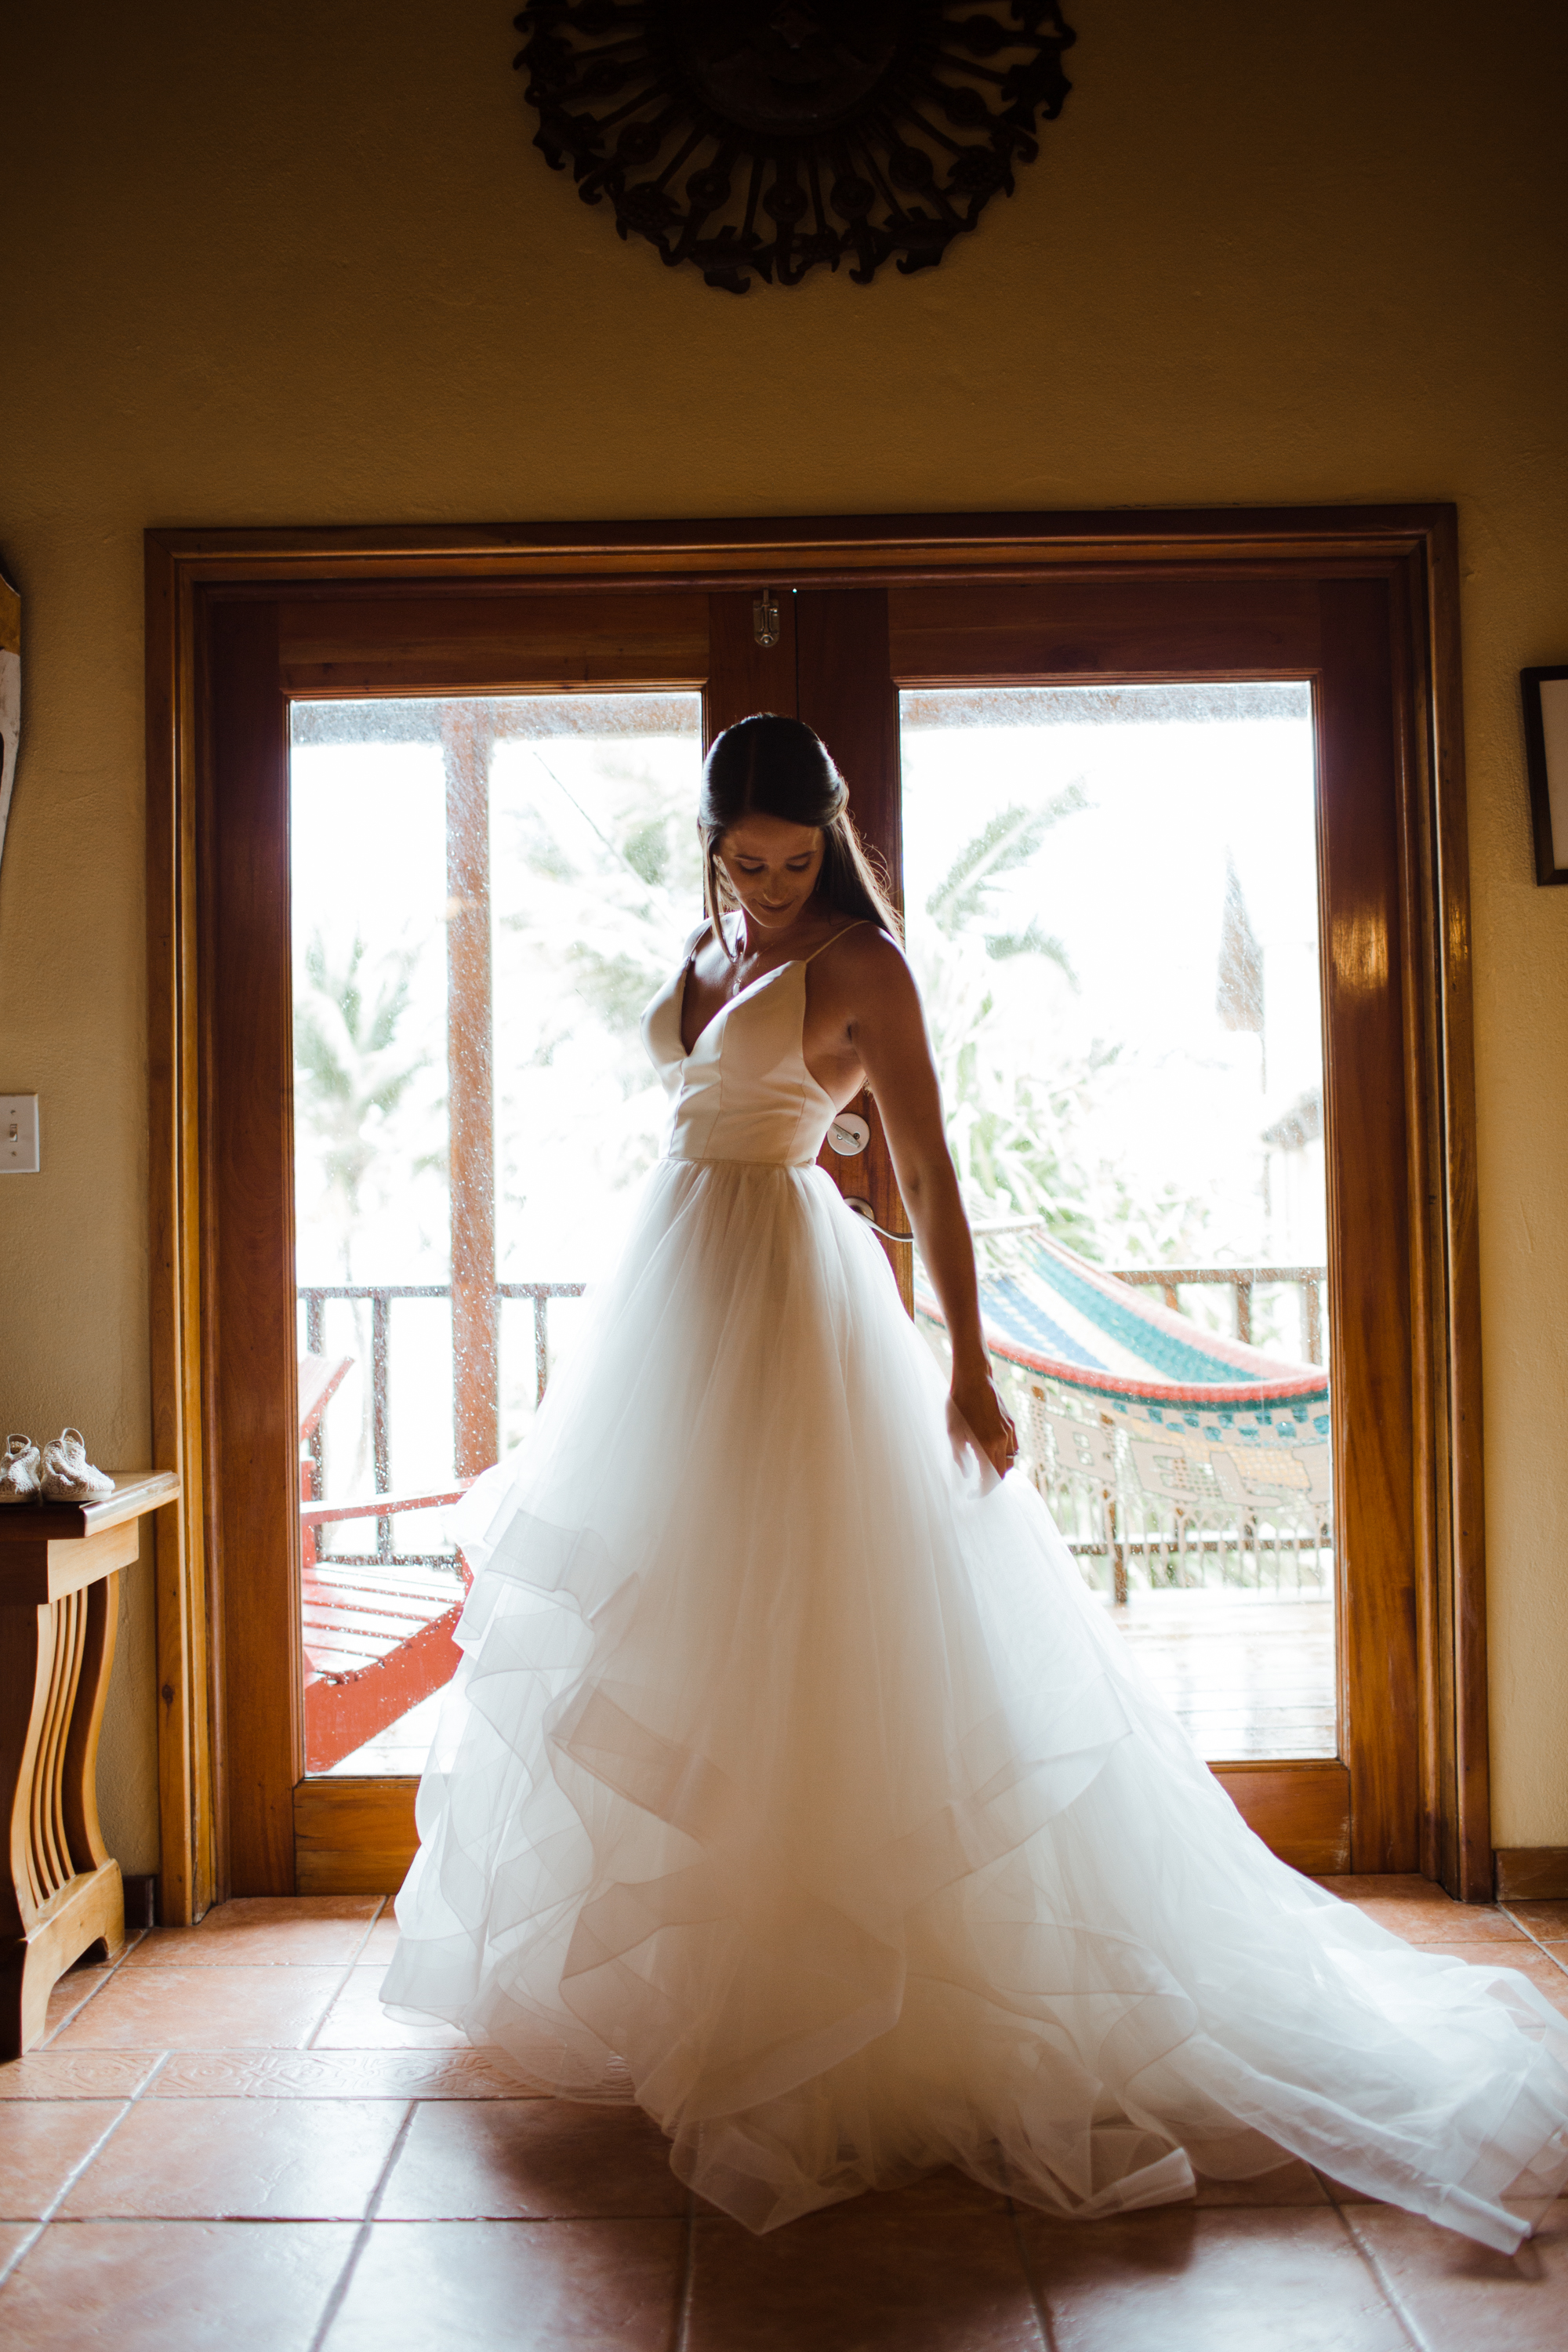 san-pescador-belize-wedding-christinemariephoto-j-k-21.jpg